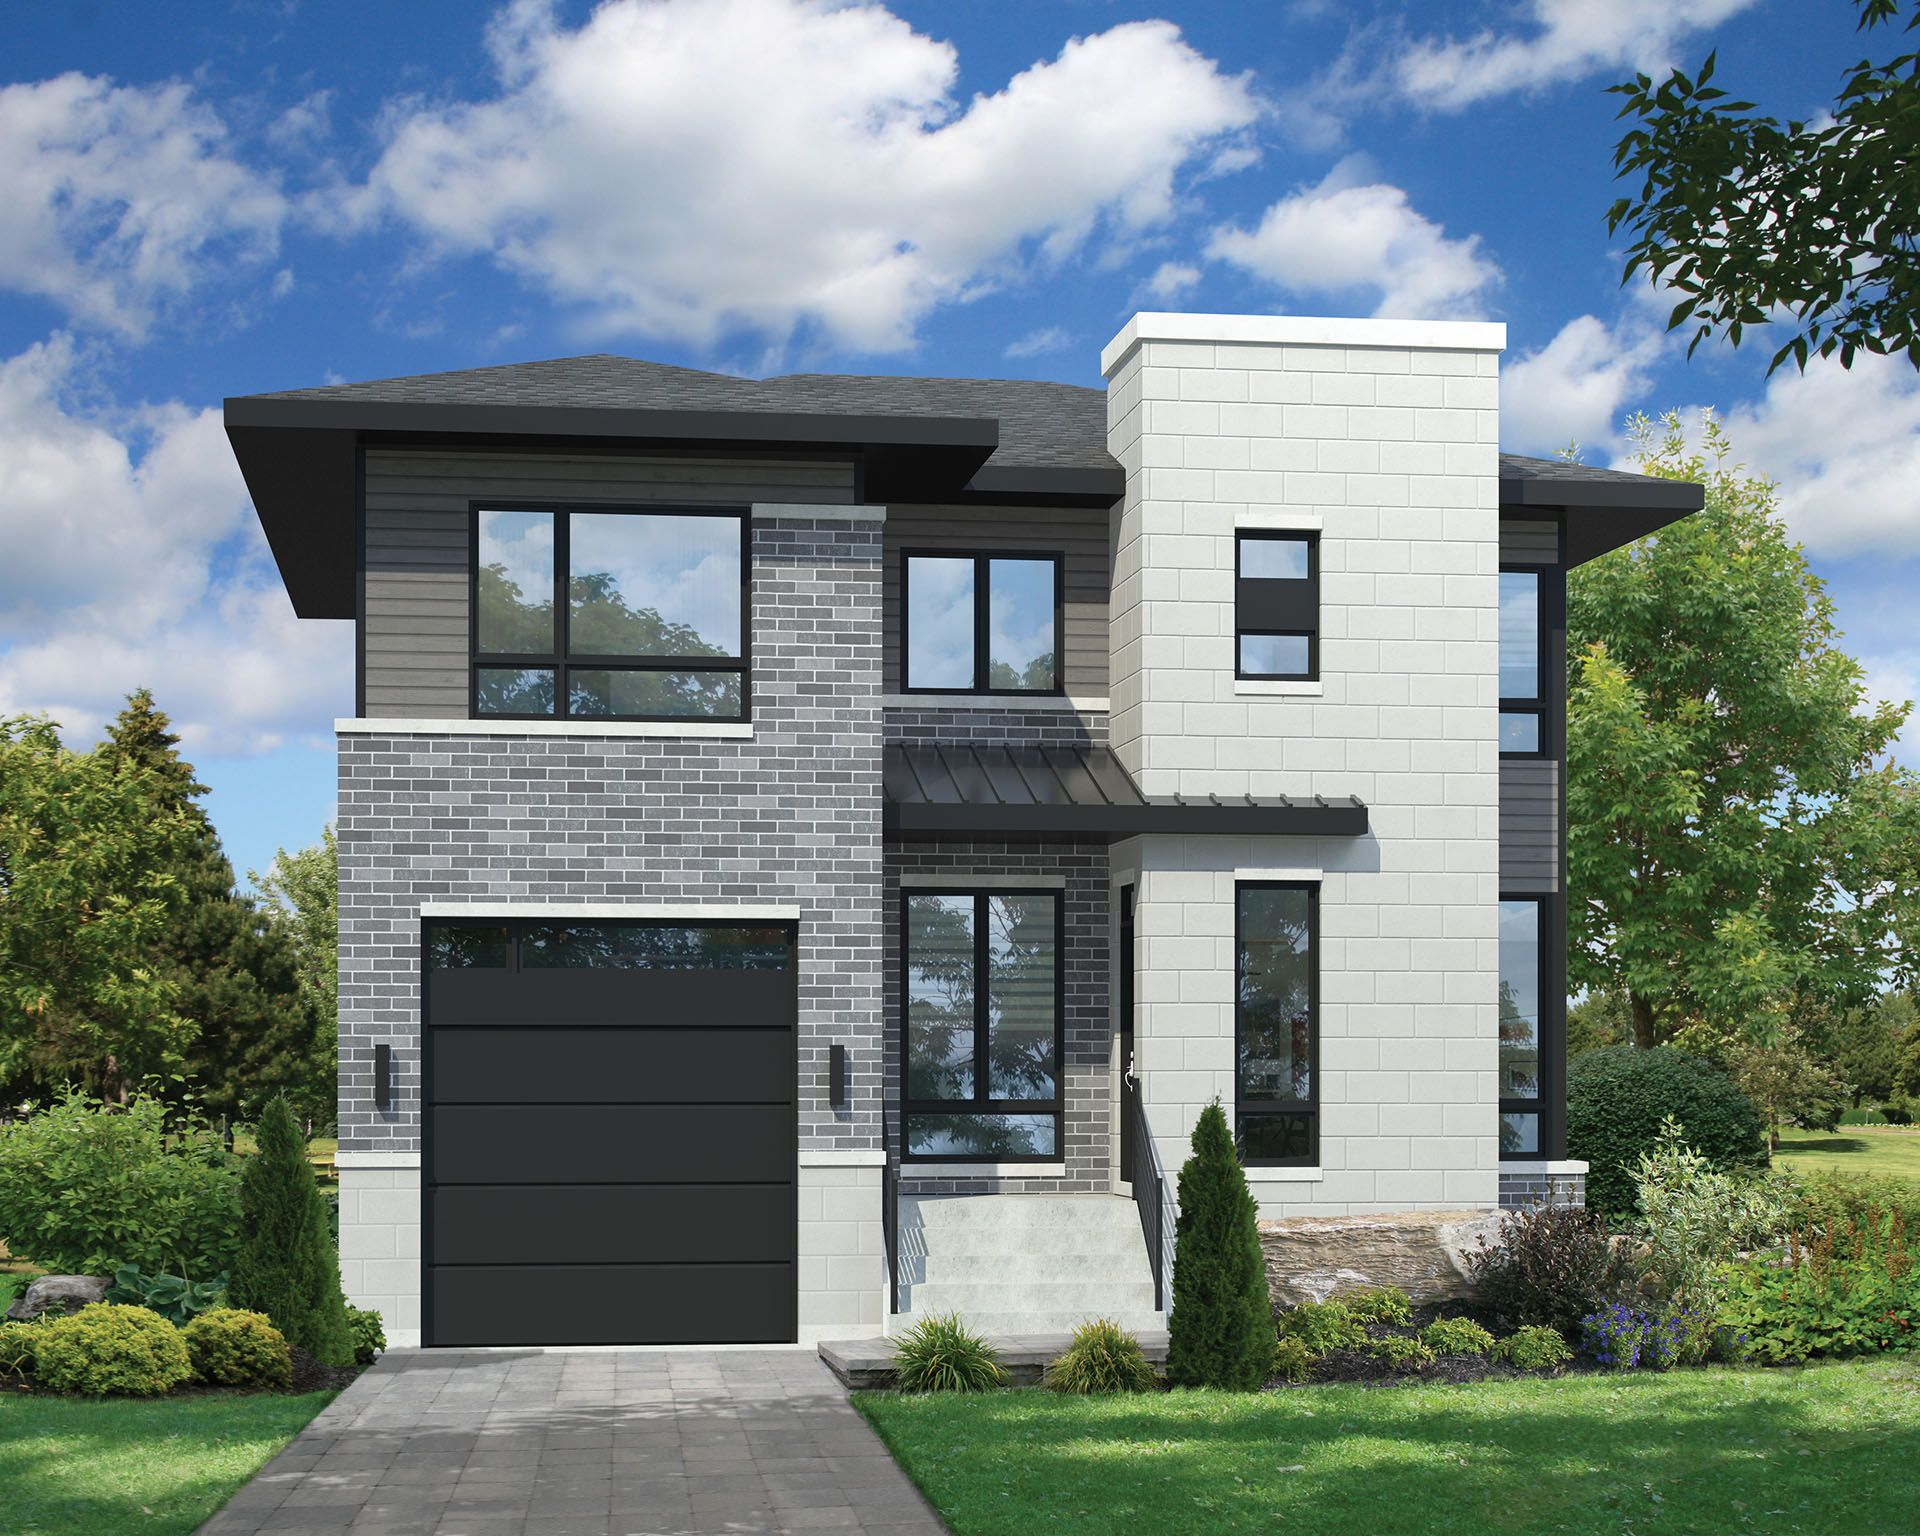 Two story contemporary house plan 80805pm contemporary modern canadian metric narrow lot 2nd floor master suite butler walk in pantry